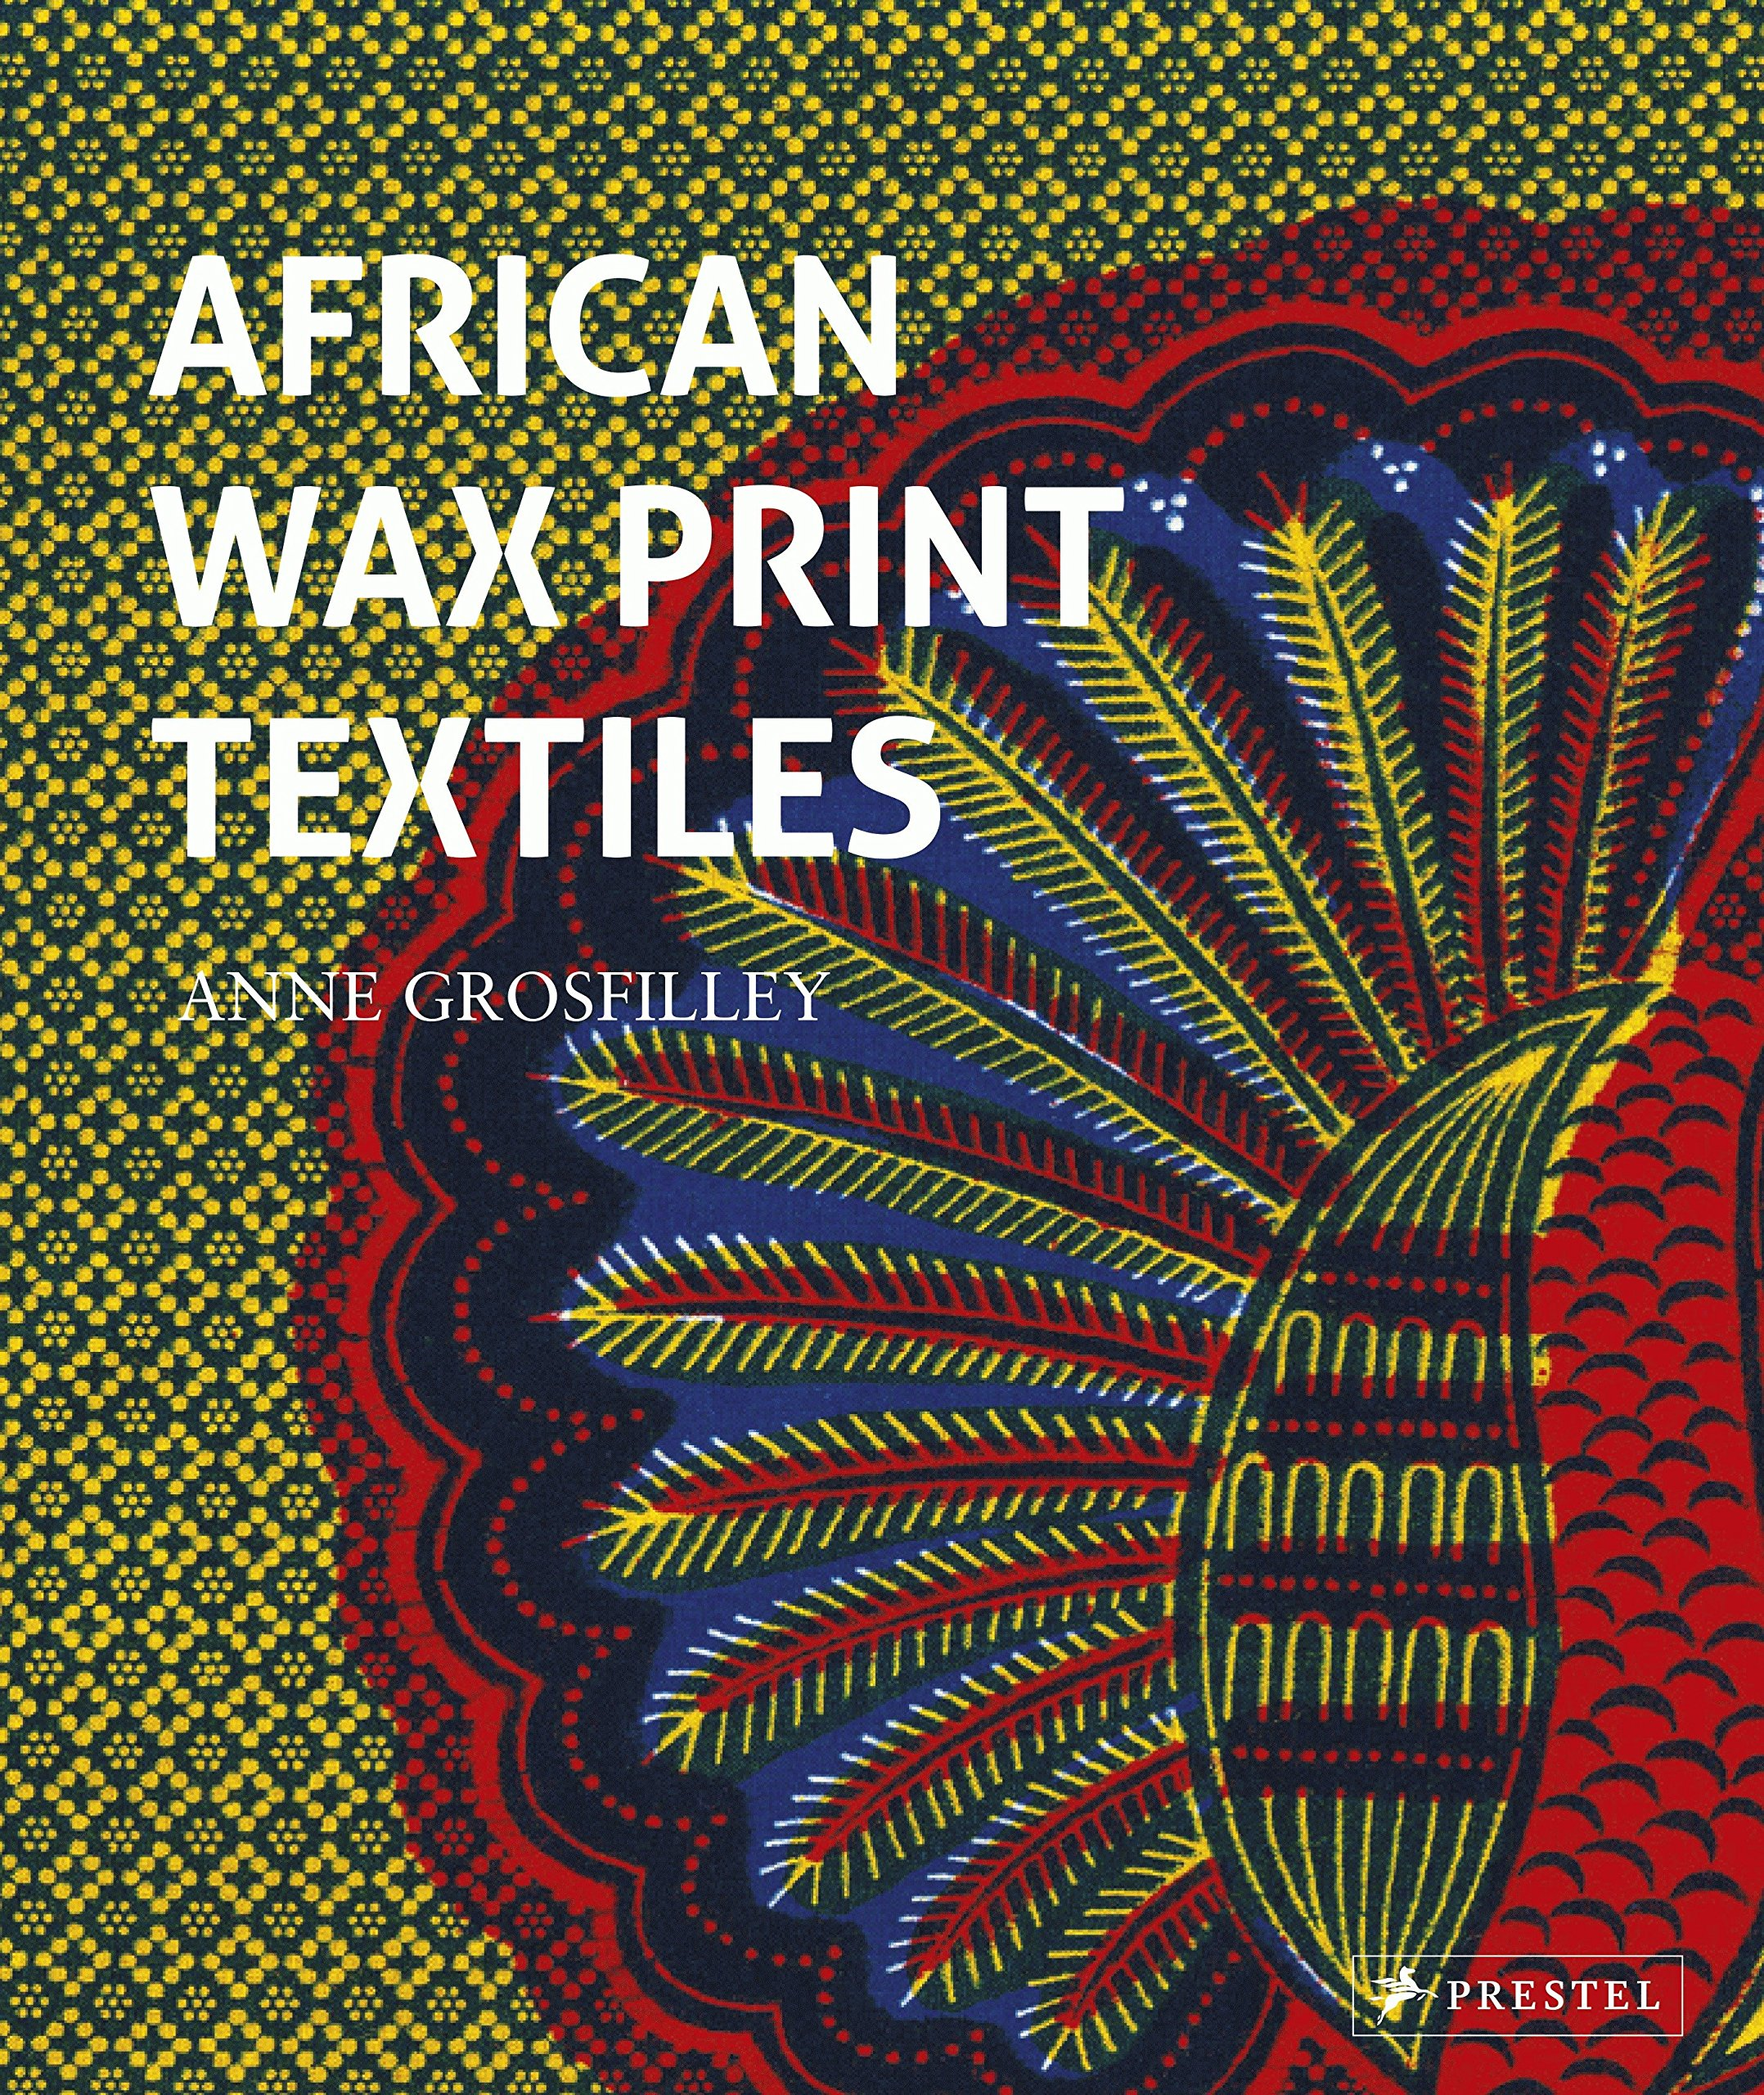 African Wax Print Textiles: Anne Grosfilley: 9783791384368: Amazon